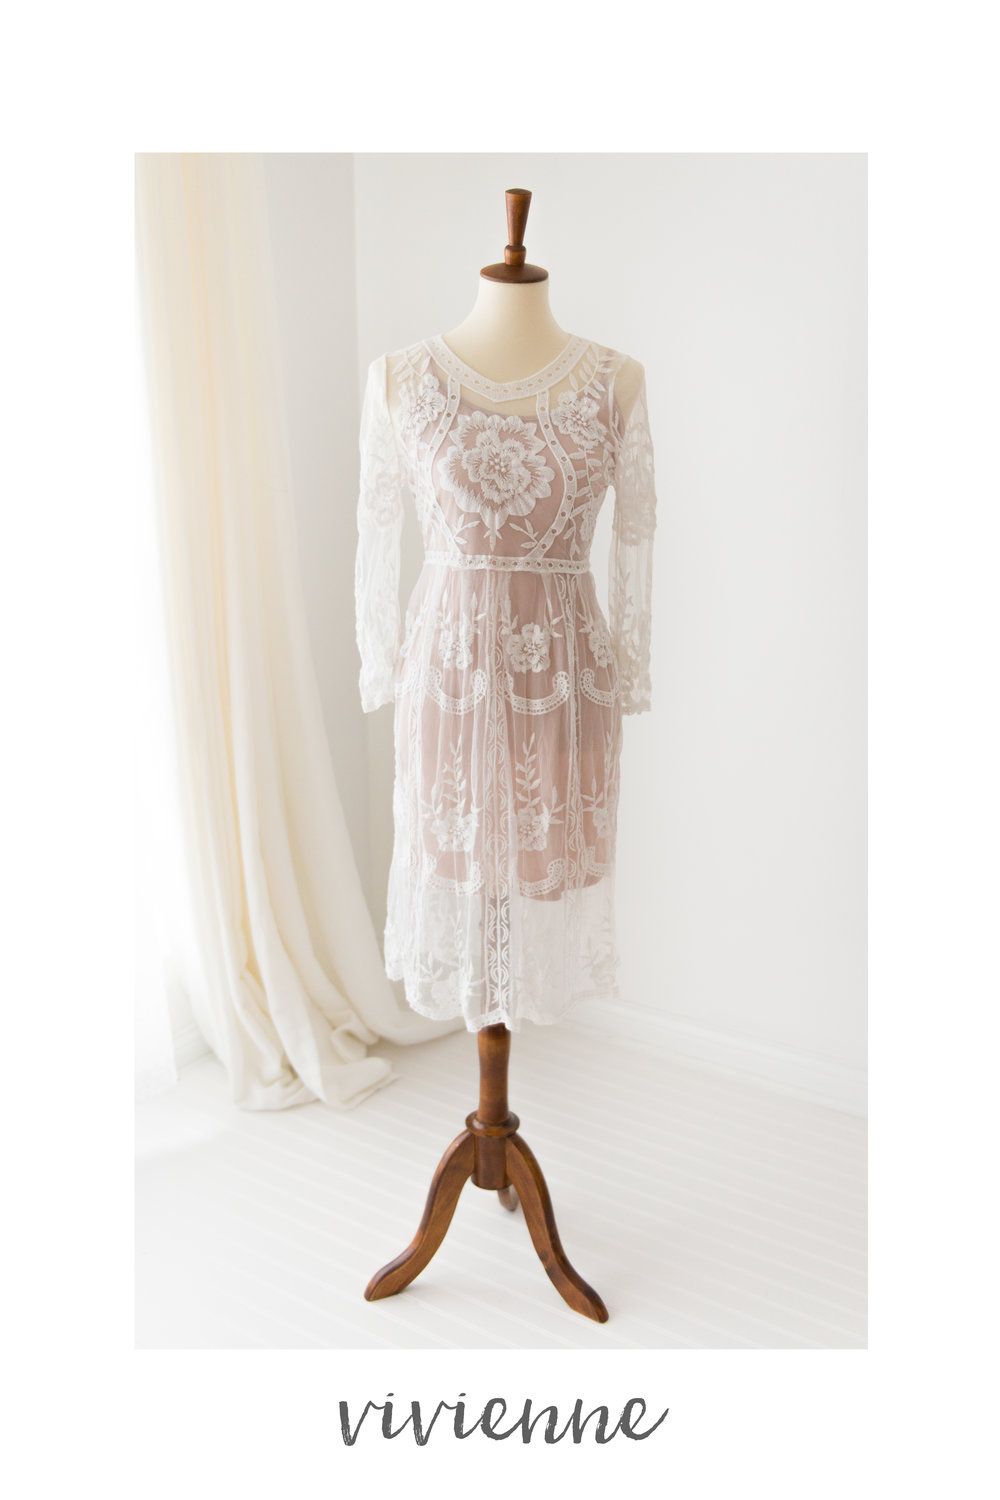 vivienne lace dress.jpg